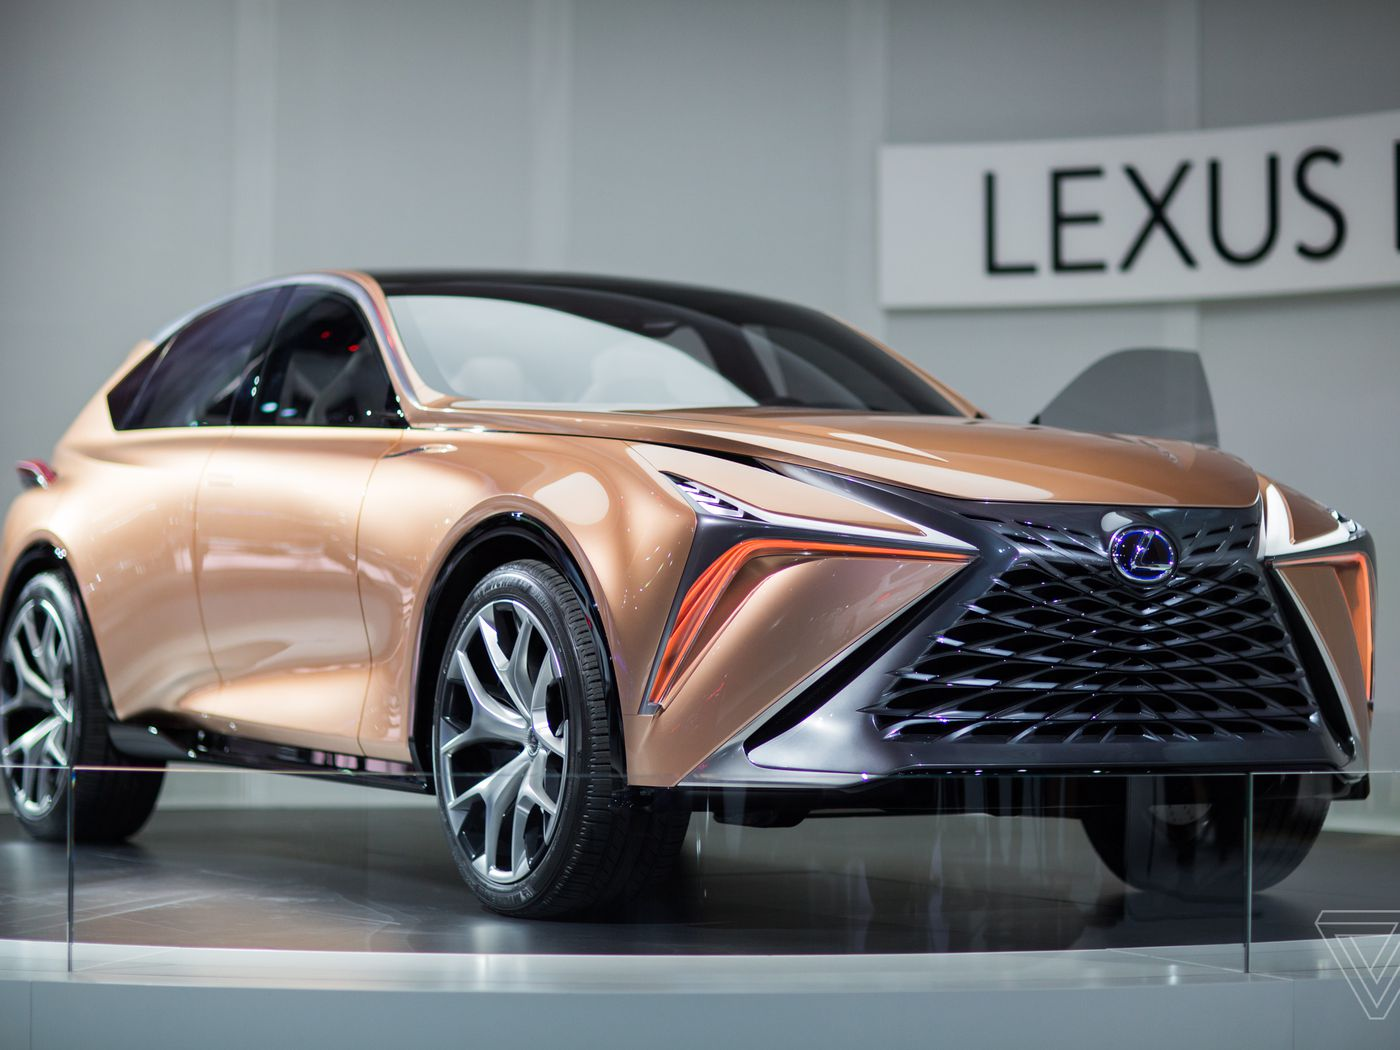 The Lexus Lf 1 Limitless Concept Is A Futuristic Rose Gold Stunner